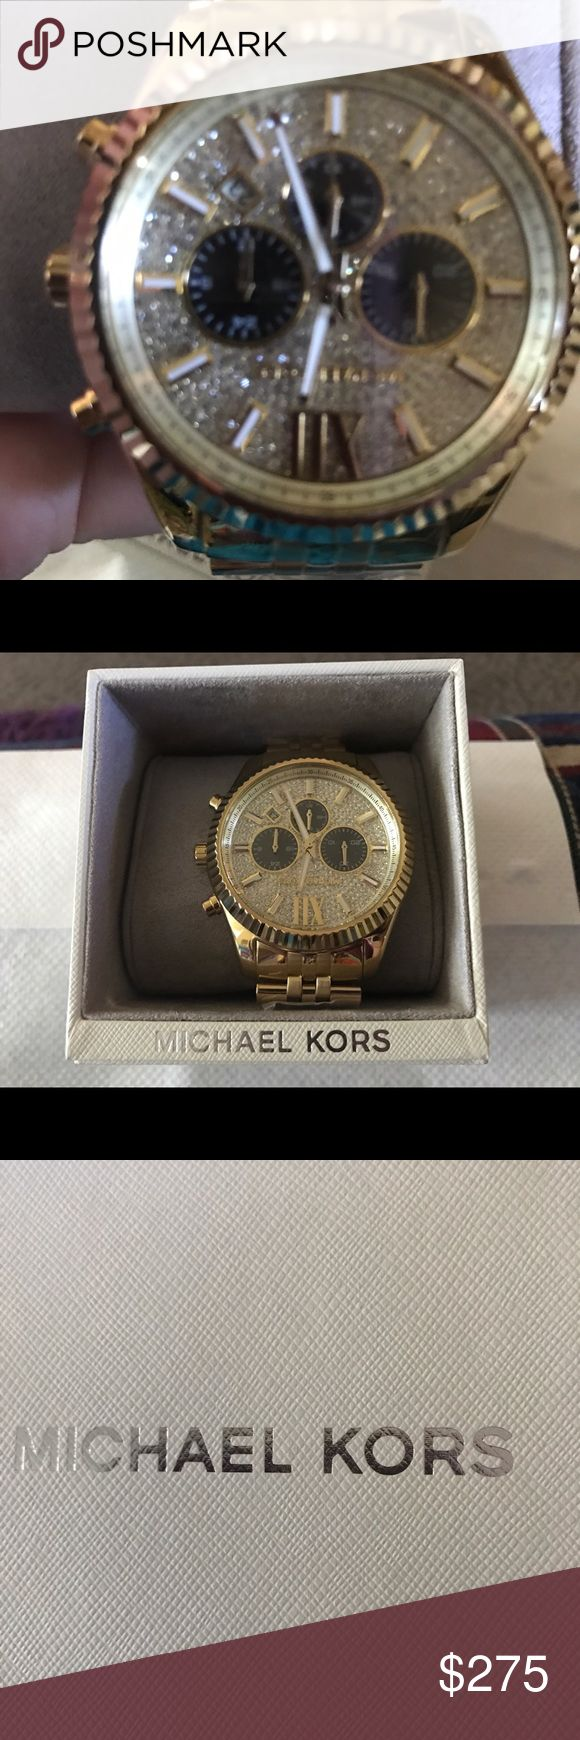 MICHAEL KORS NWT MENS WATCH GOLD Stunning but manly Michael Kors gold accented watch, new in the box, retail 350.00, just amazing. Michael Kors Accessories Watches